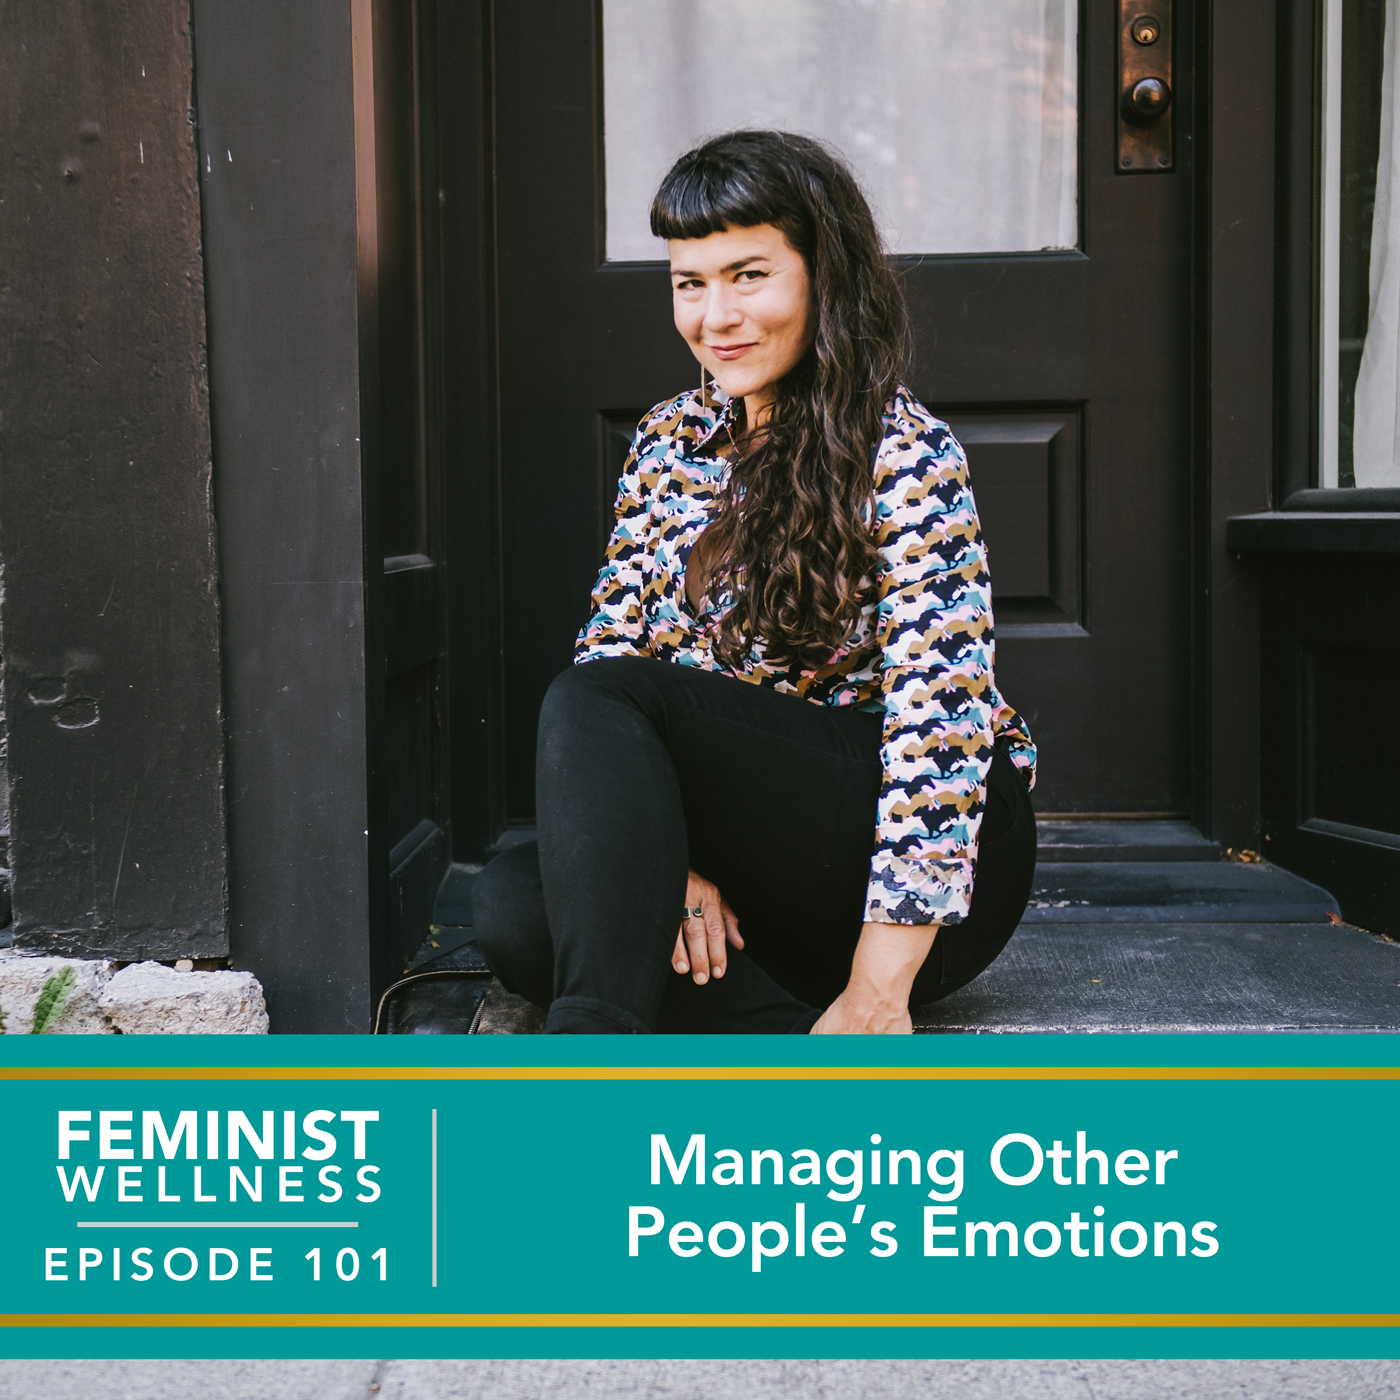 Managing Other People's Emotions